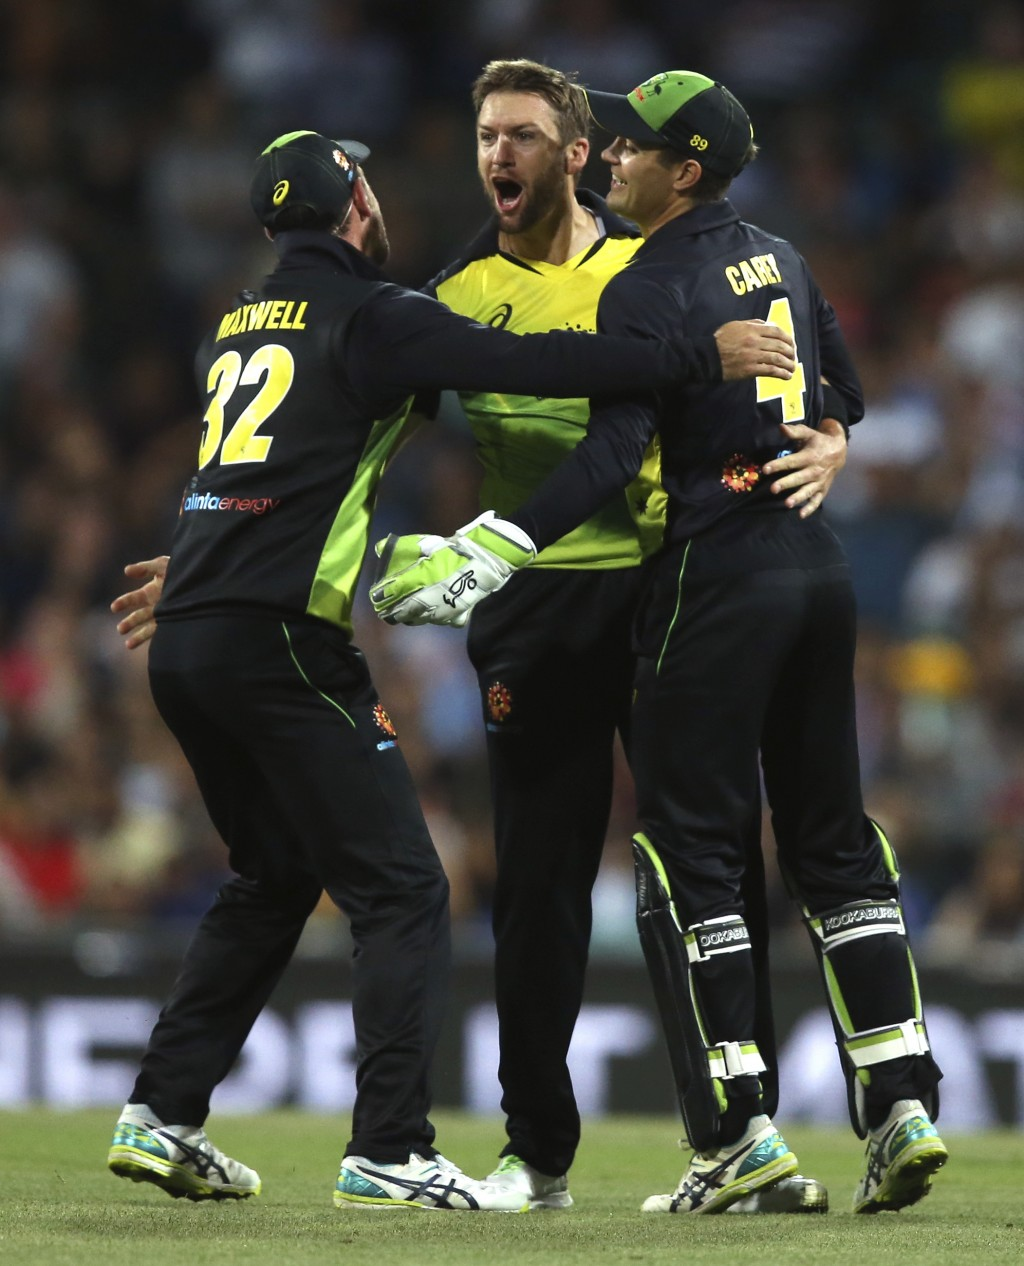 Australia's Andrew Tye, centre, is congratulated by teammates after dismissing India's Rishabh Pant during their Twenty20 cricket match in Sydney, Sun